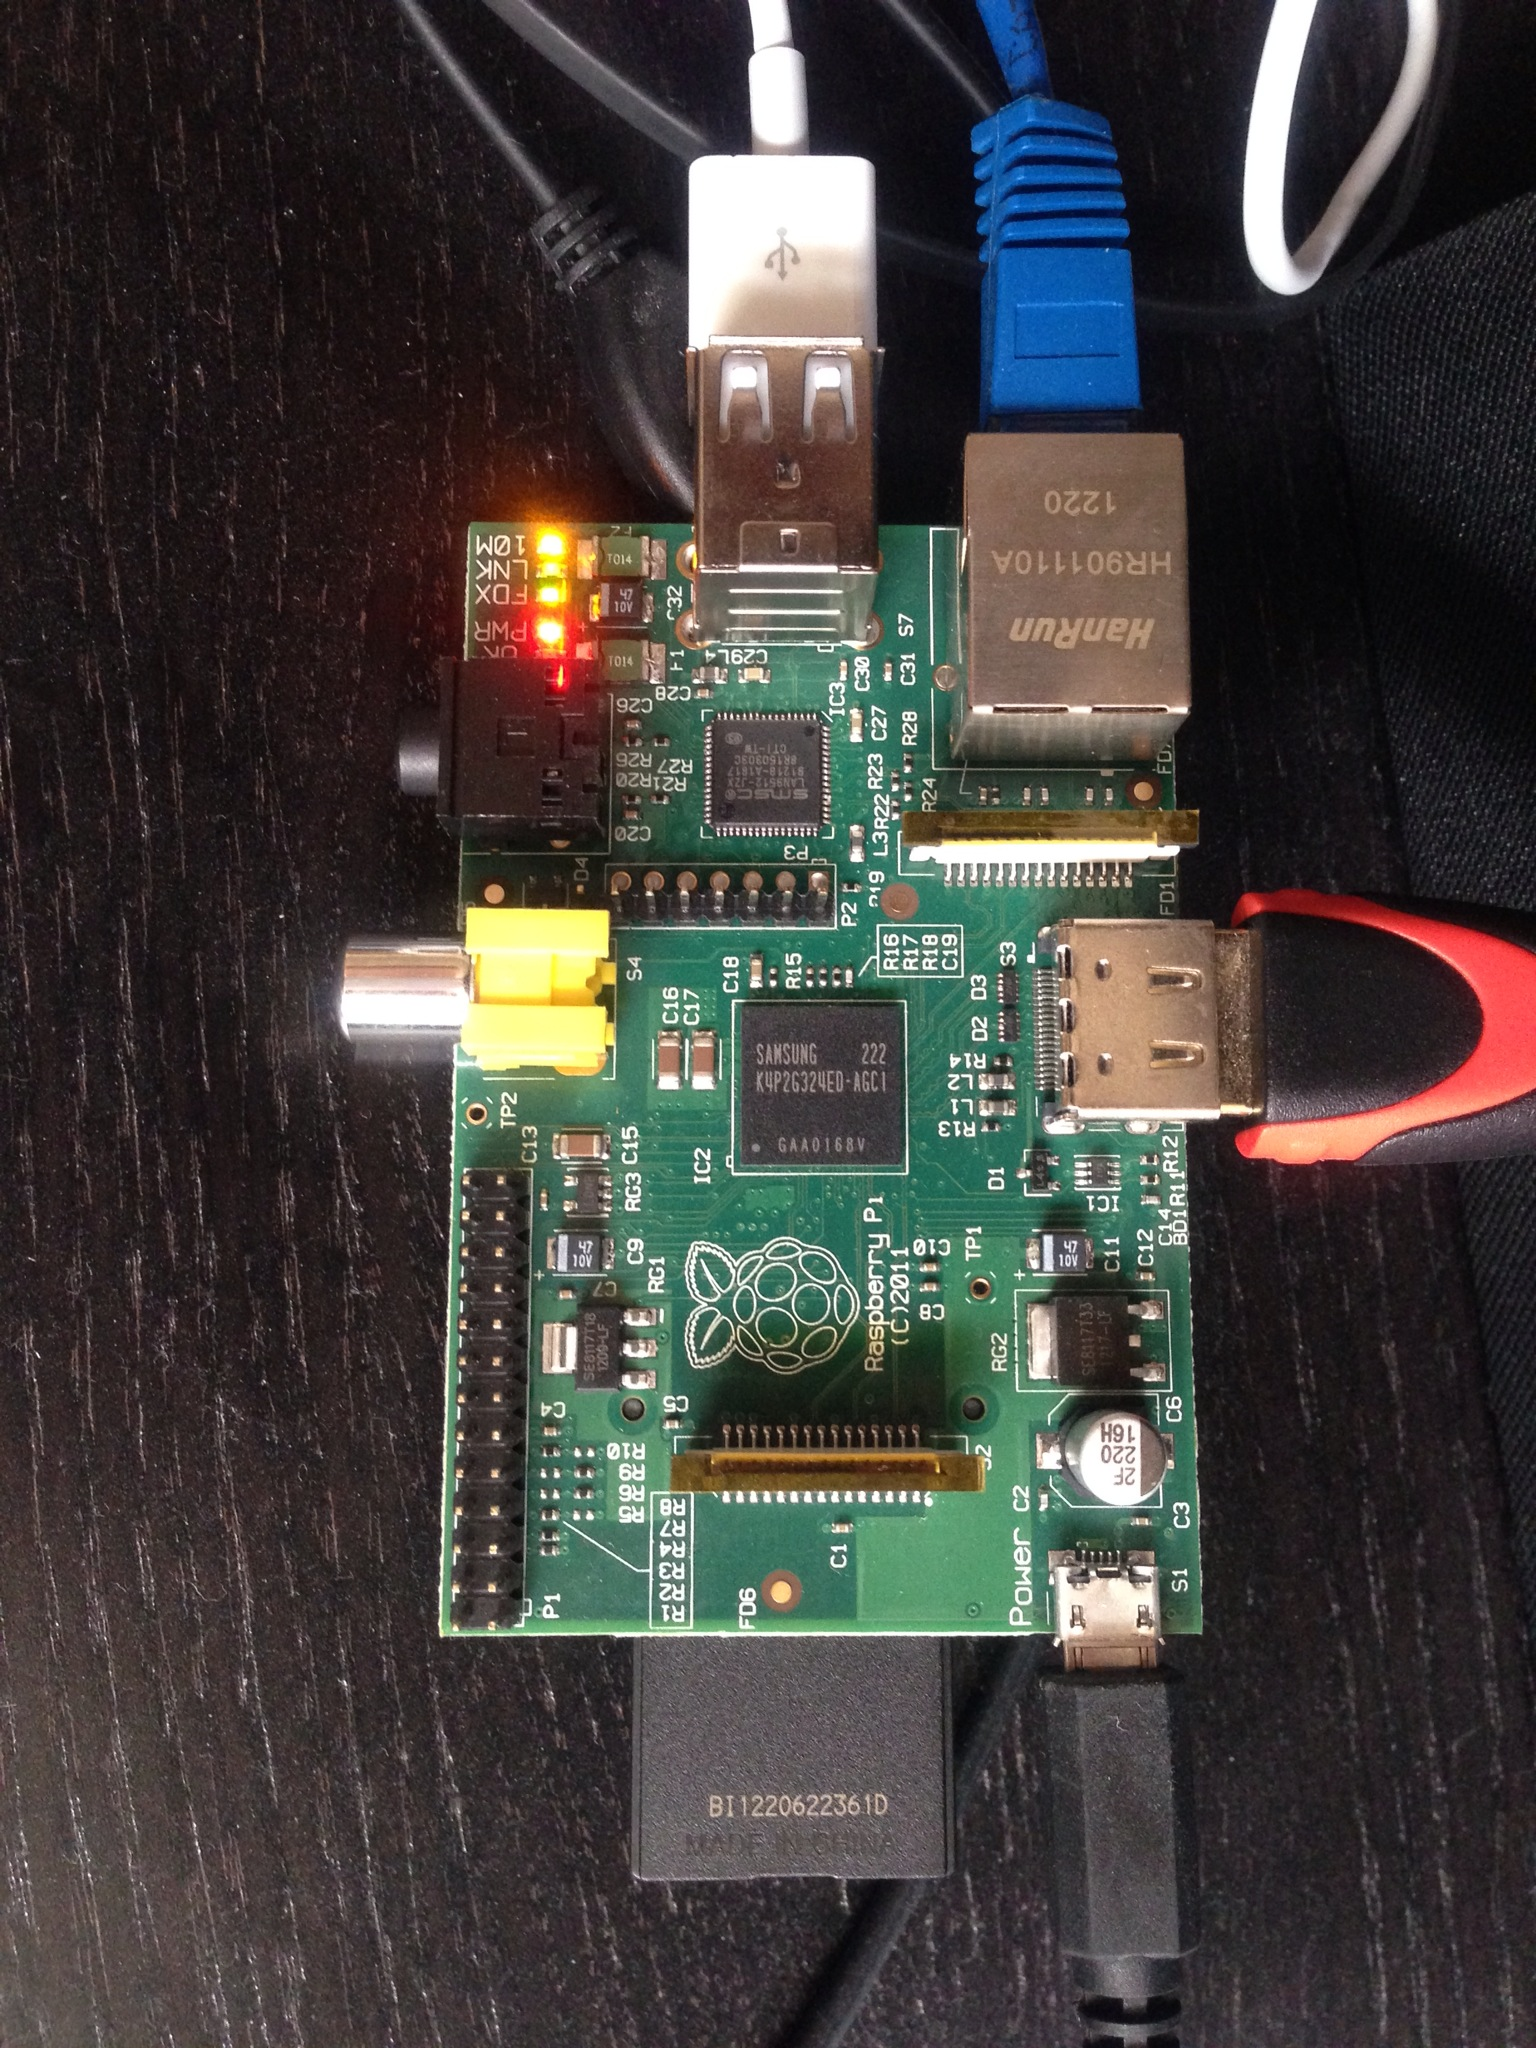 http://evuraan.info/screenshots/images/thani-raspberry-pi-1.jpg